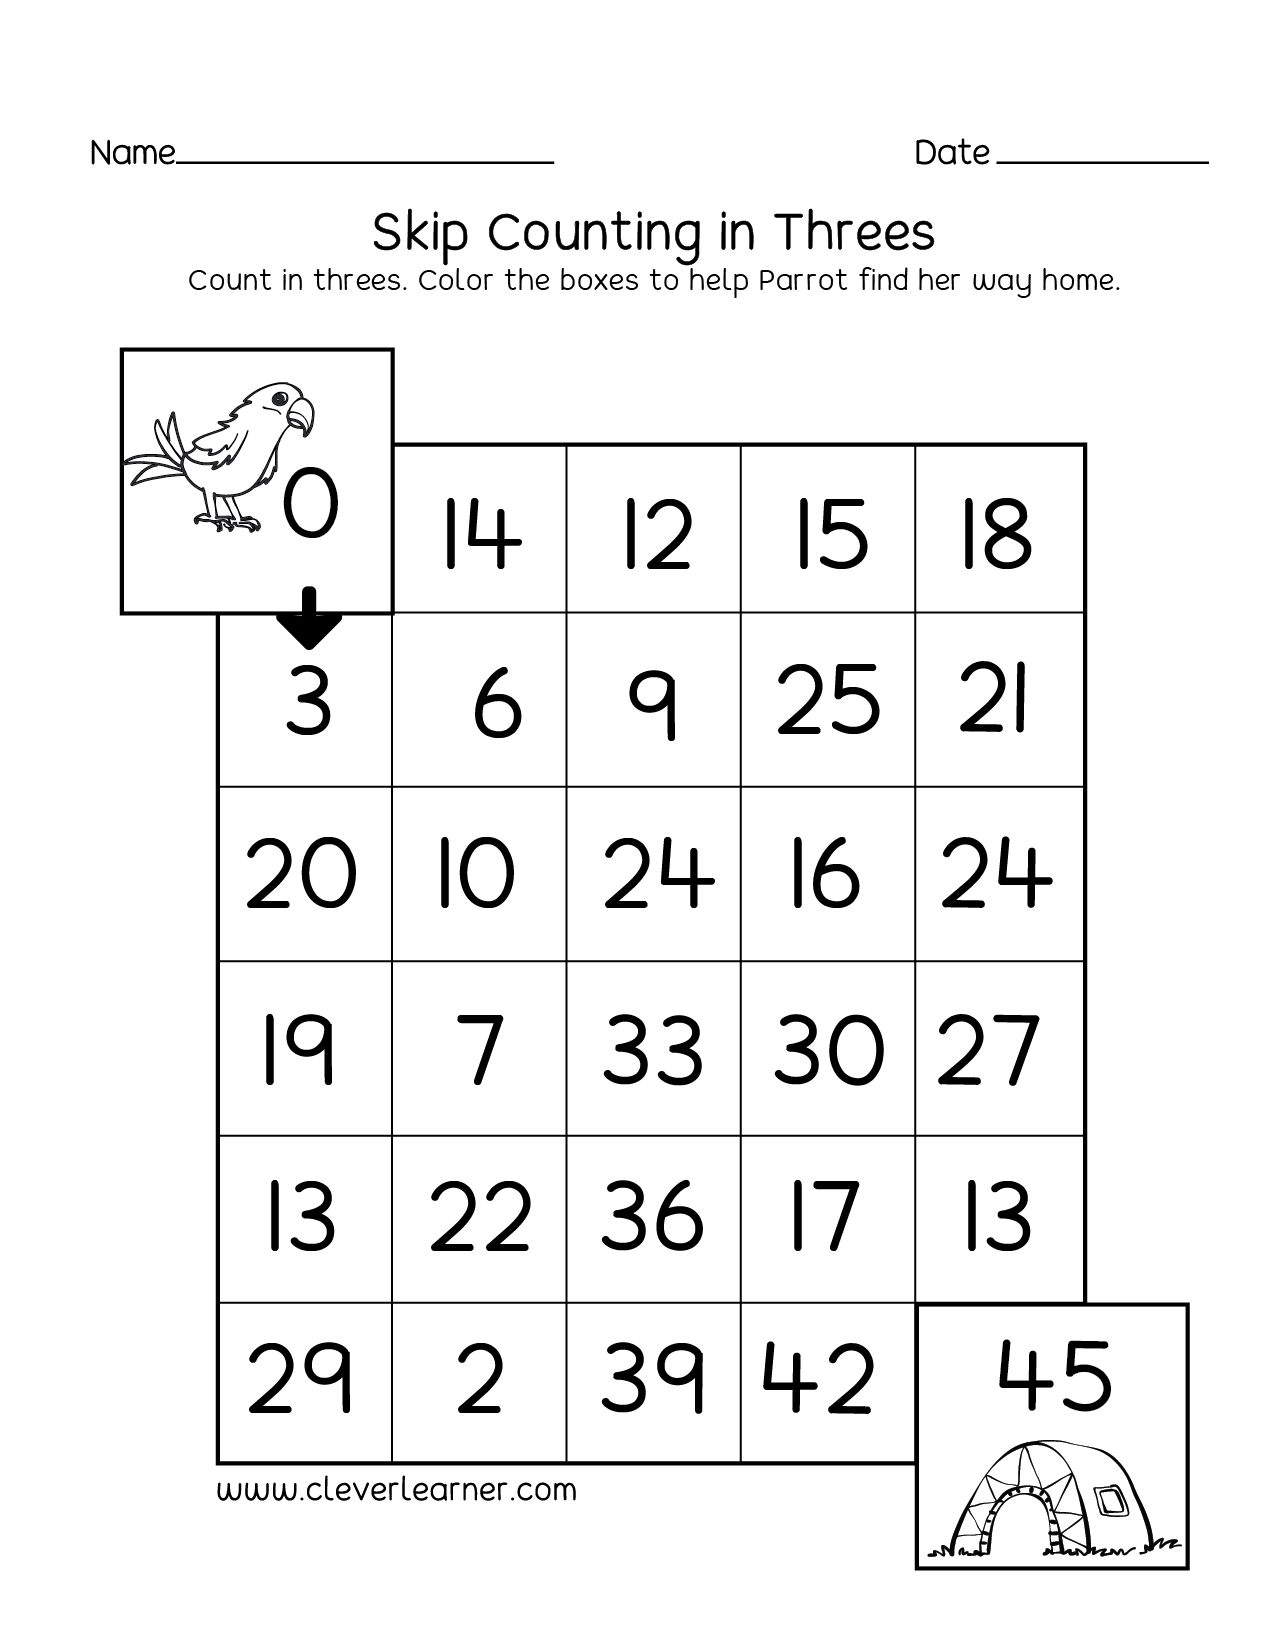 Skipping Numbers Activities And Worksheets For